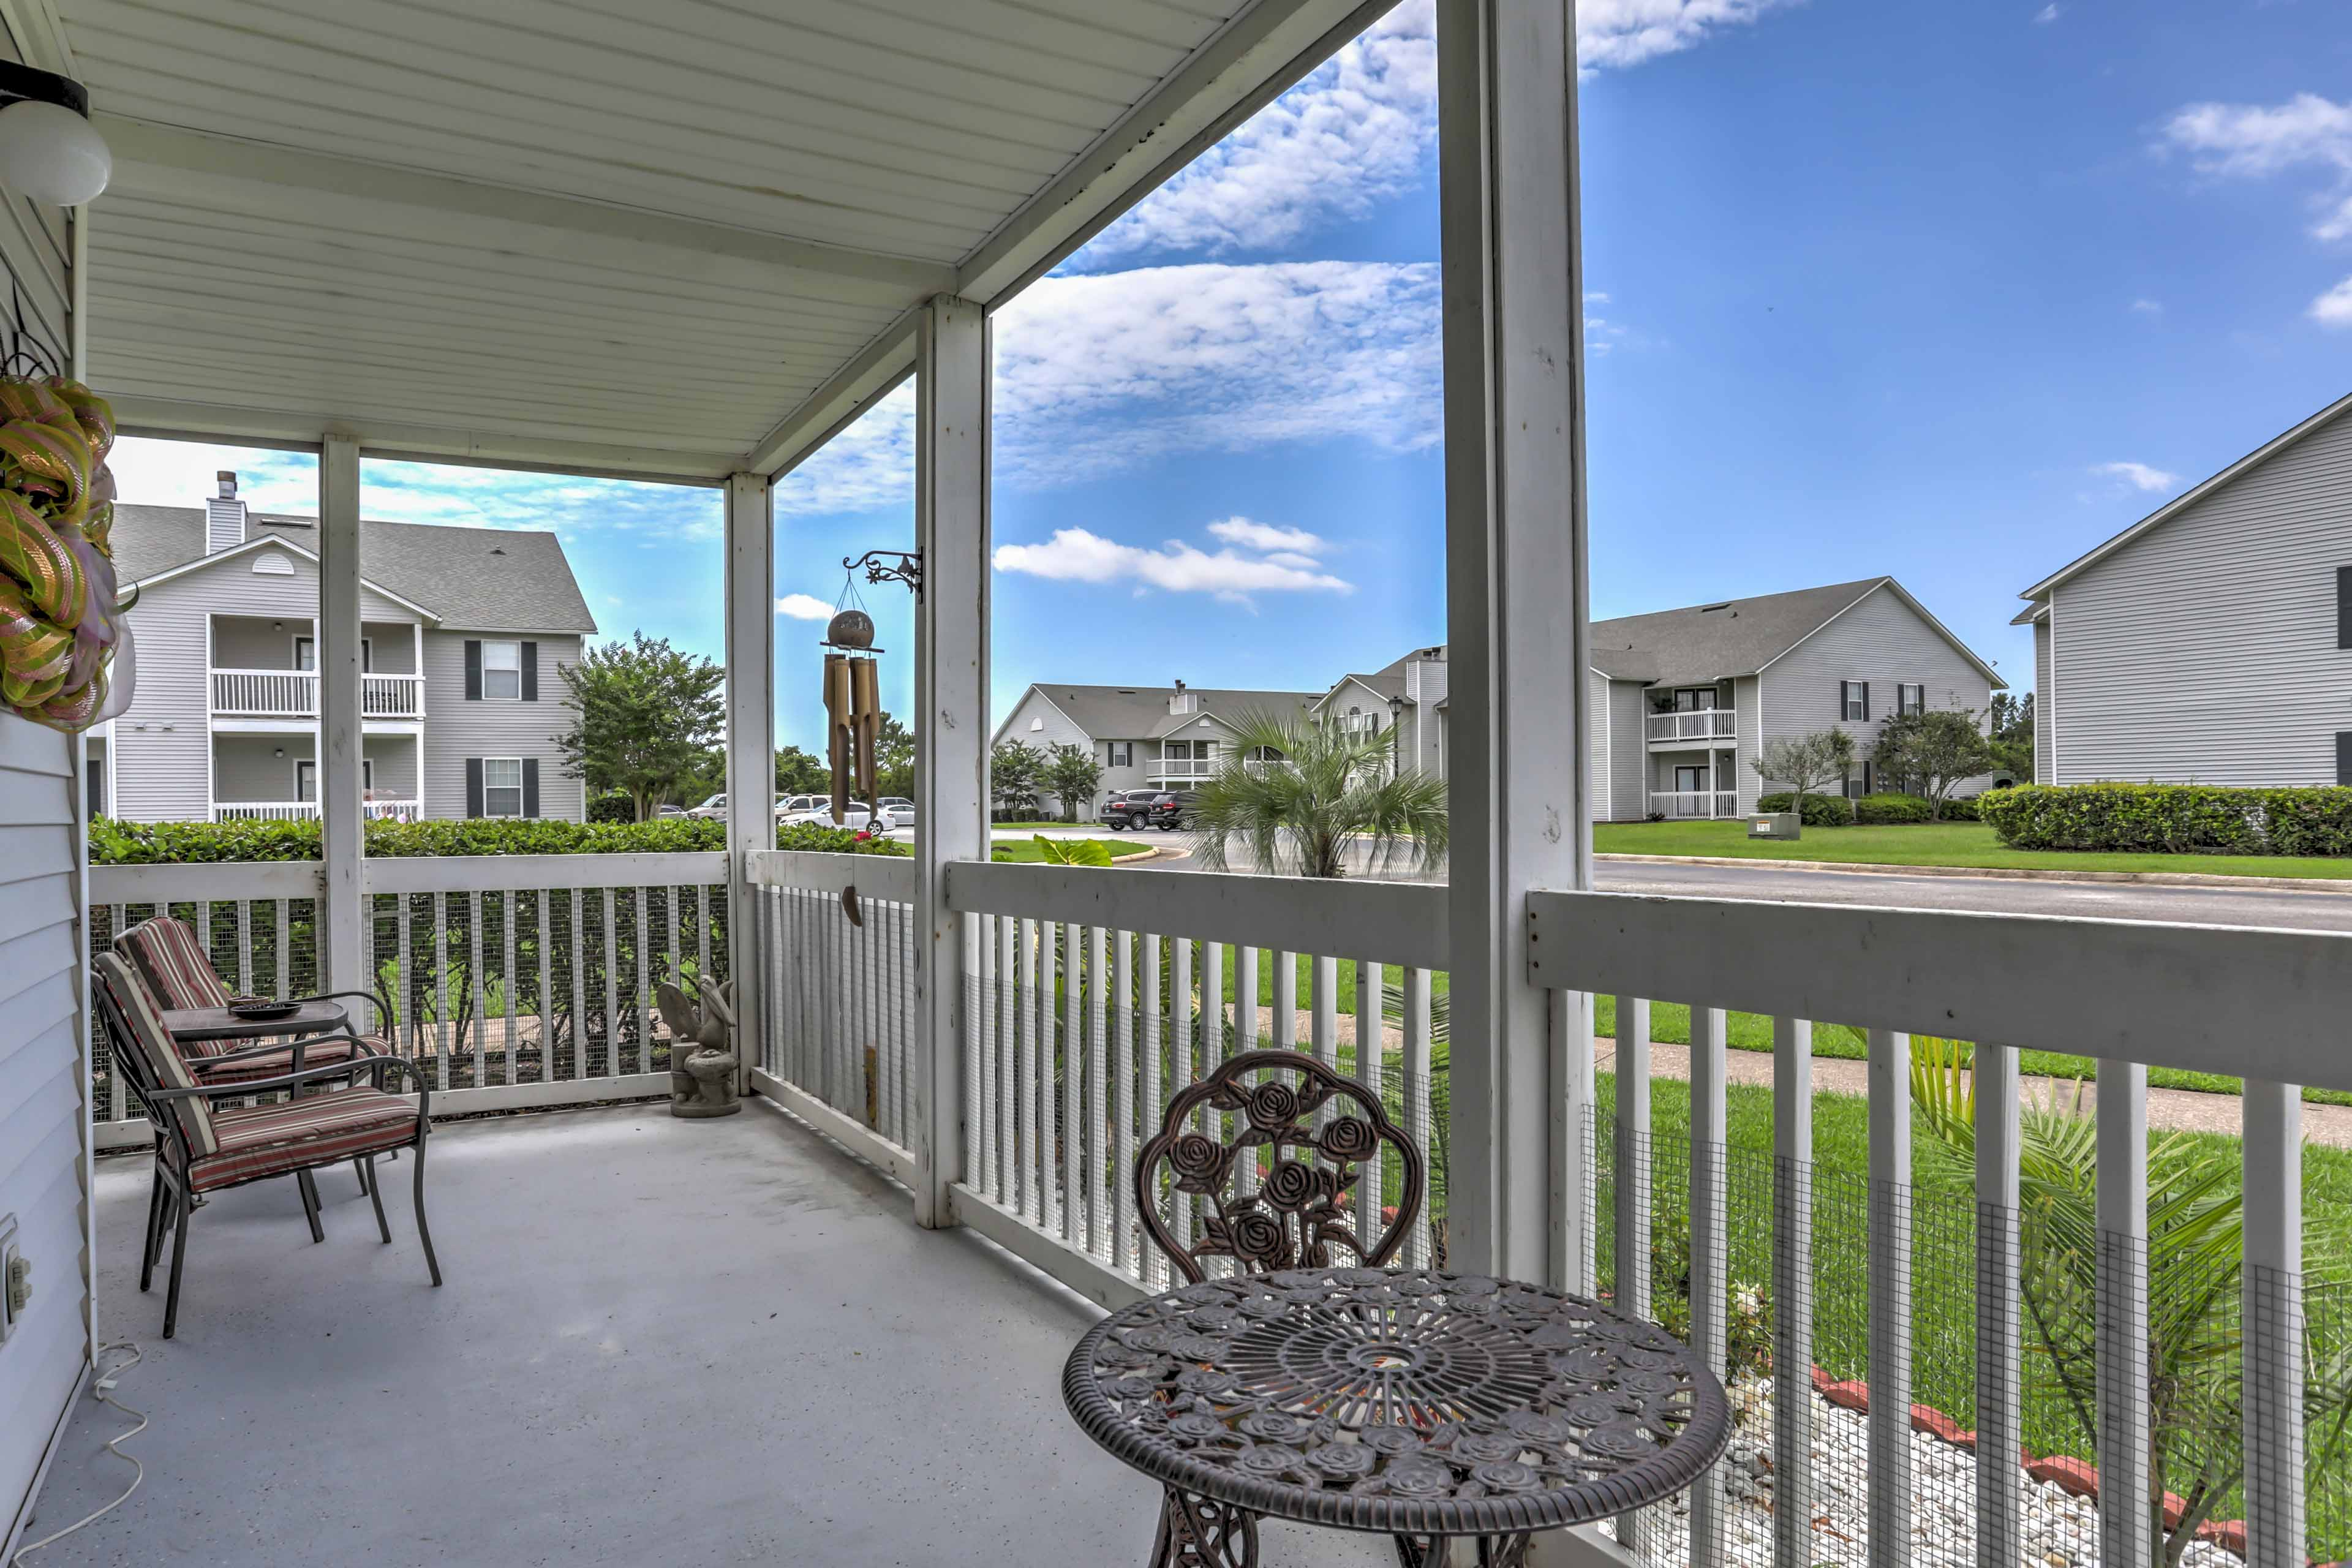 Spend peaceful afternoons relaxing on your porch while enjoying the fresh breeze.